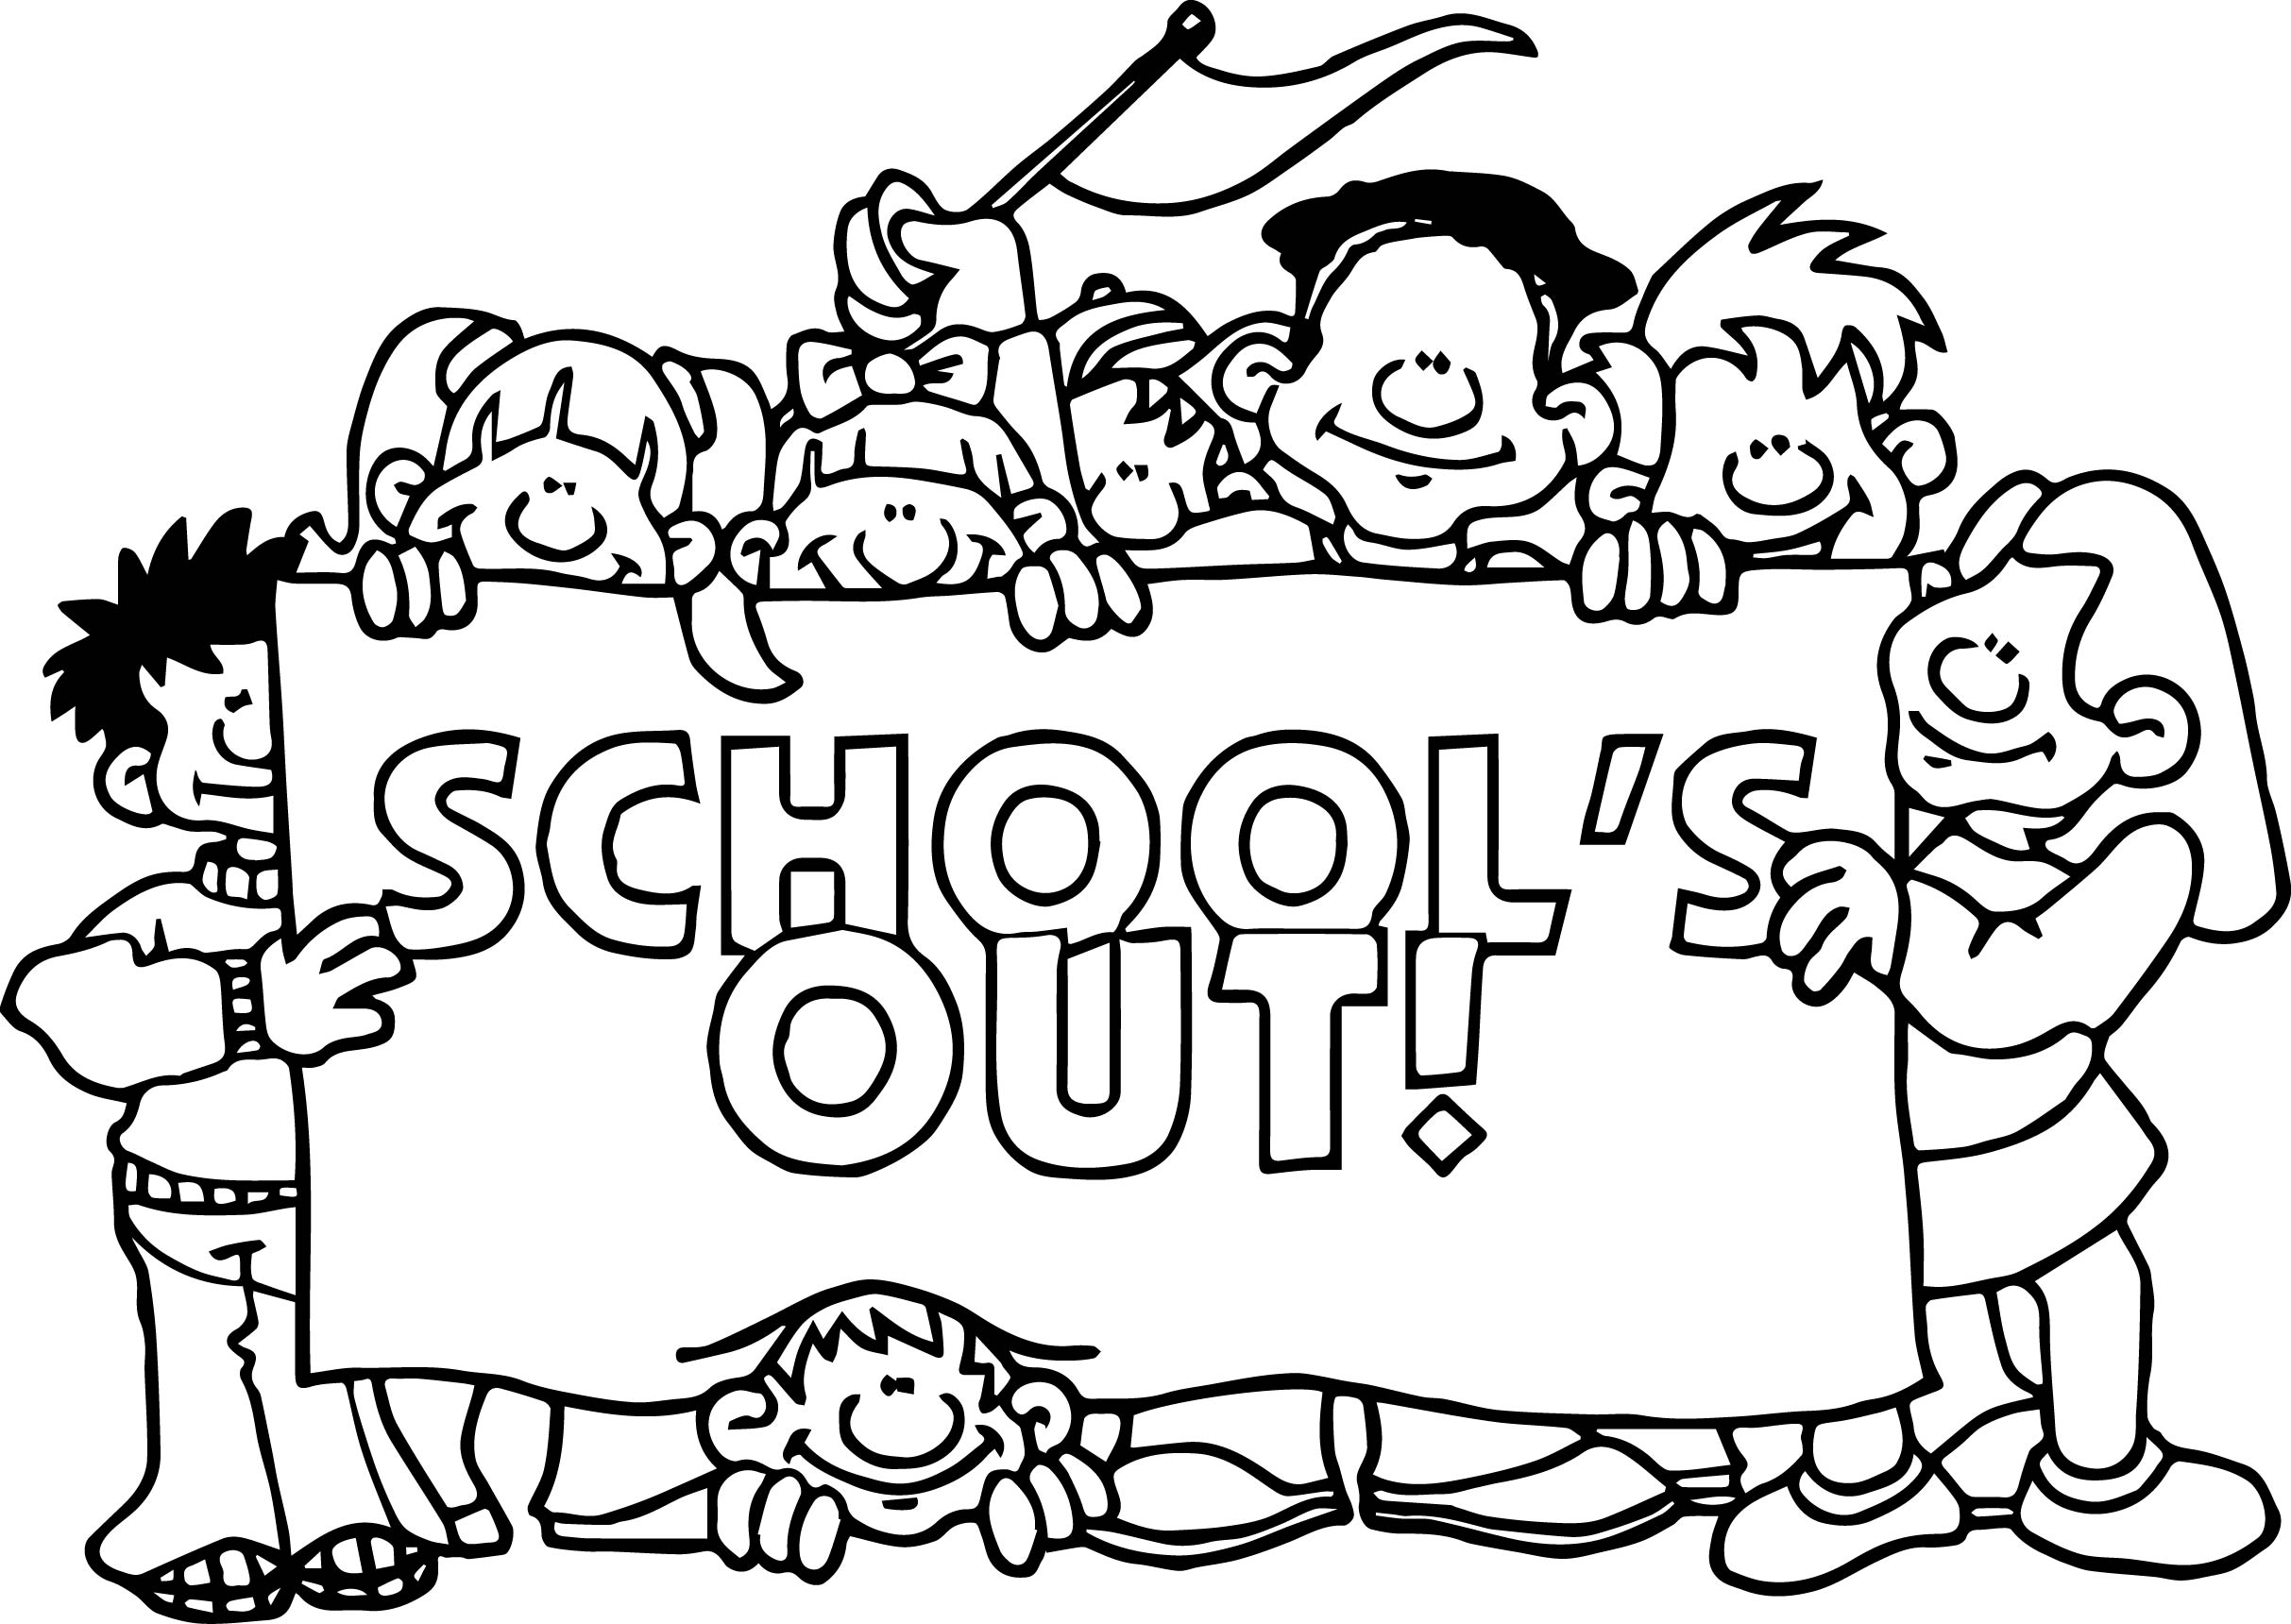 Coloring Pages School S Out Coloring Page